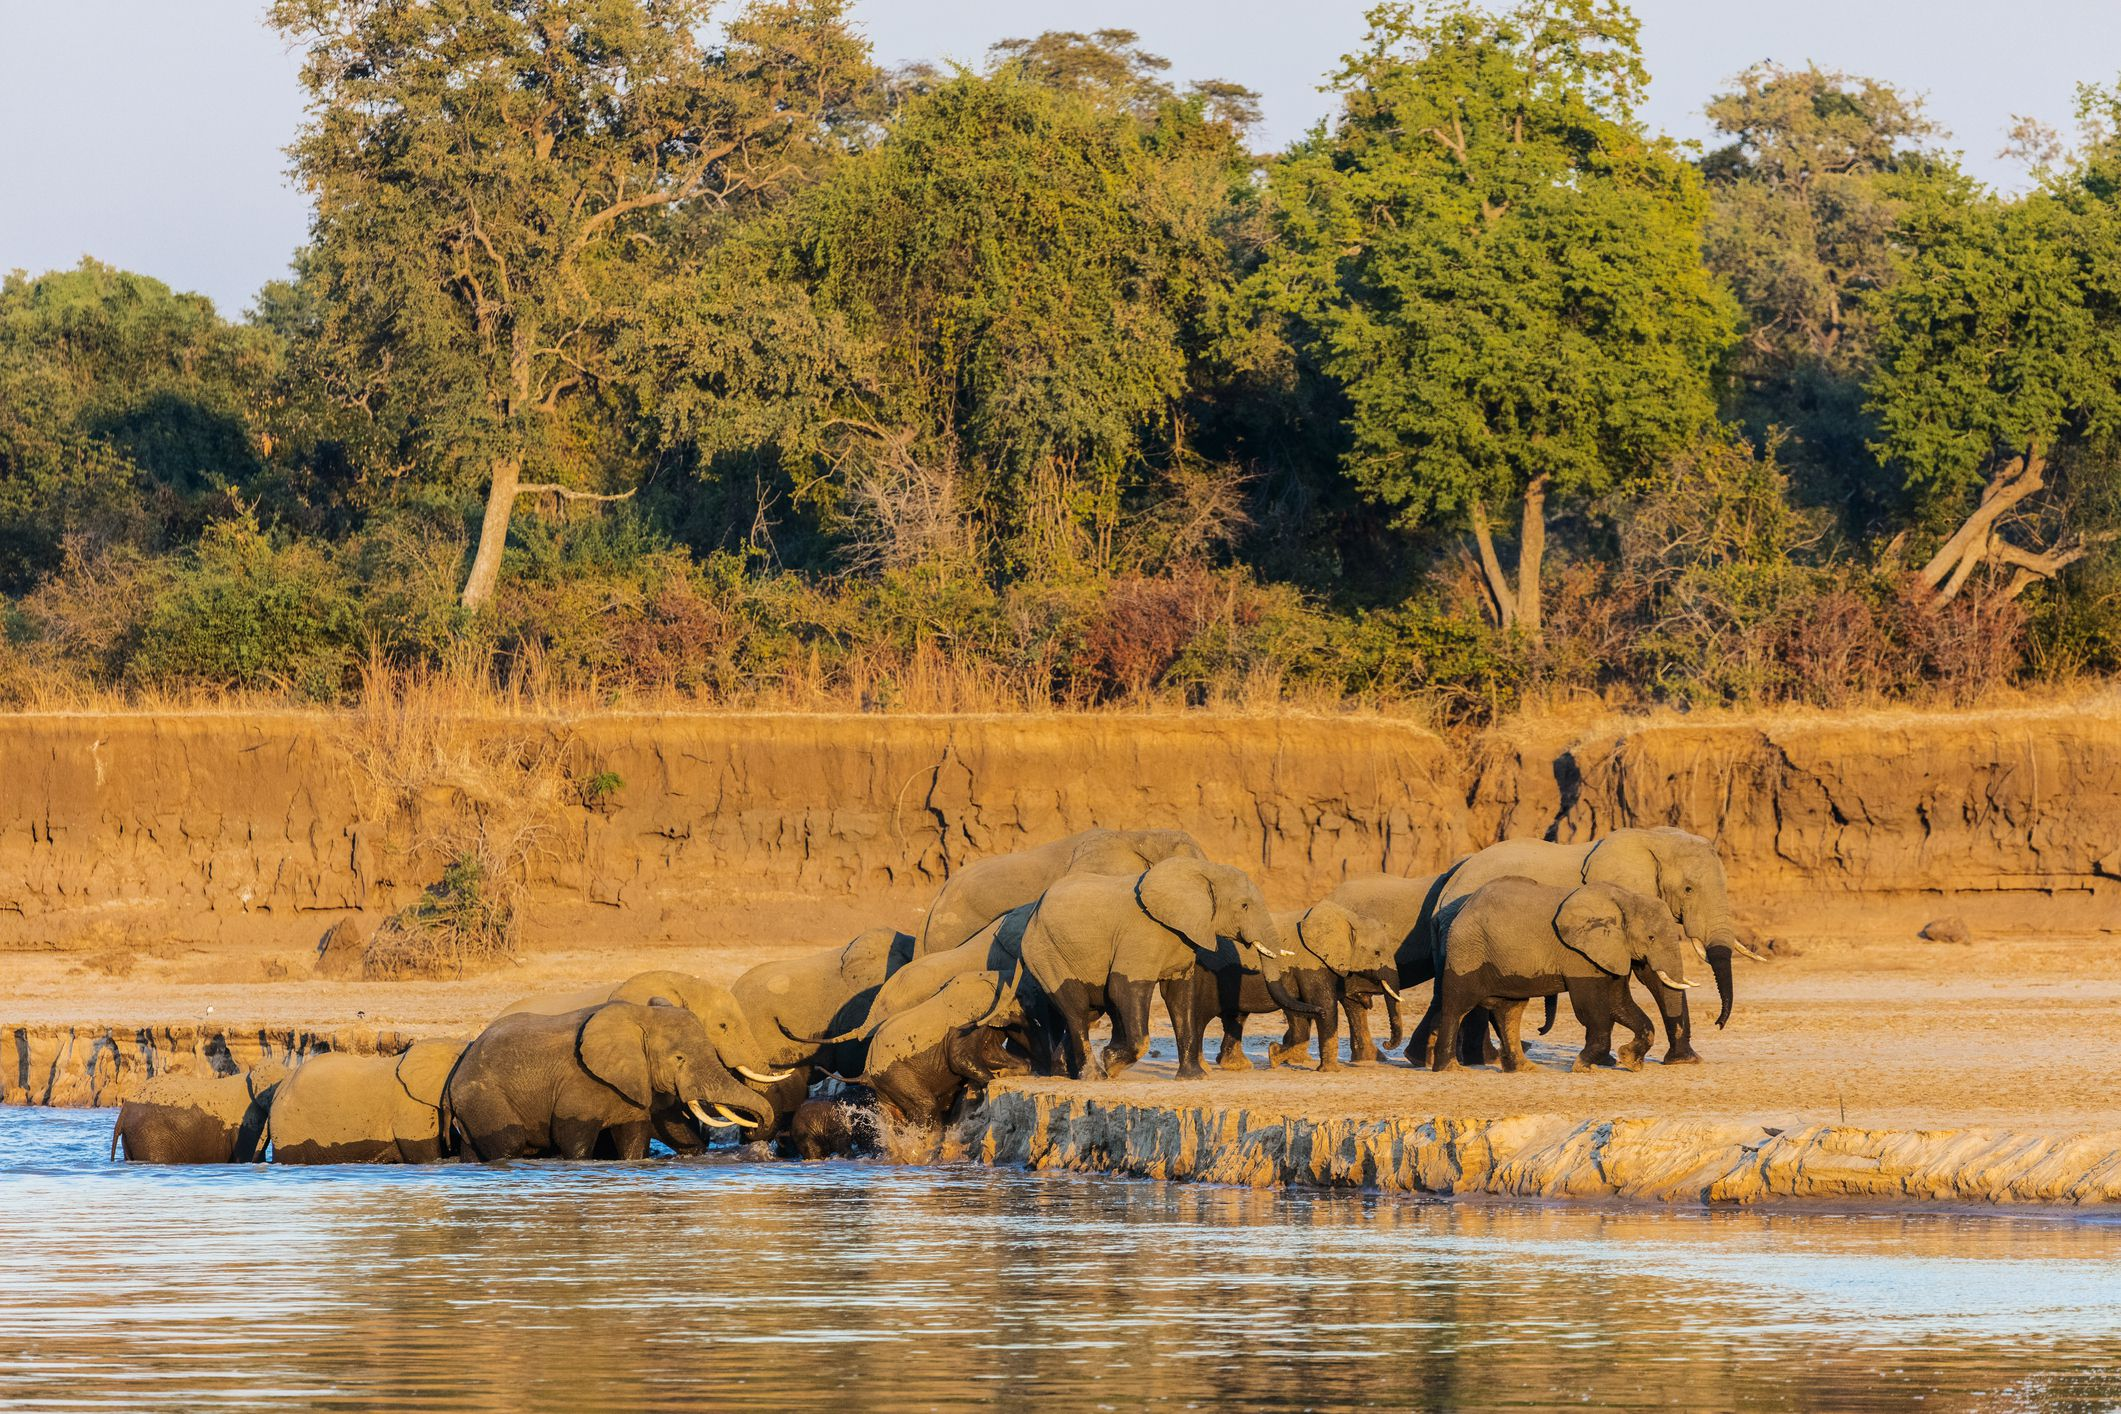 Great Lakes Auto >> South Luangwa National Park, Zambia: The Complete Guide